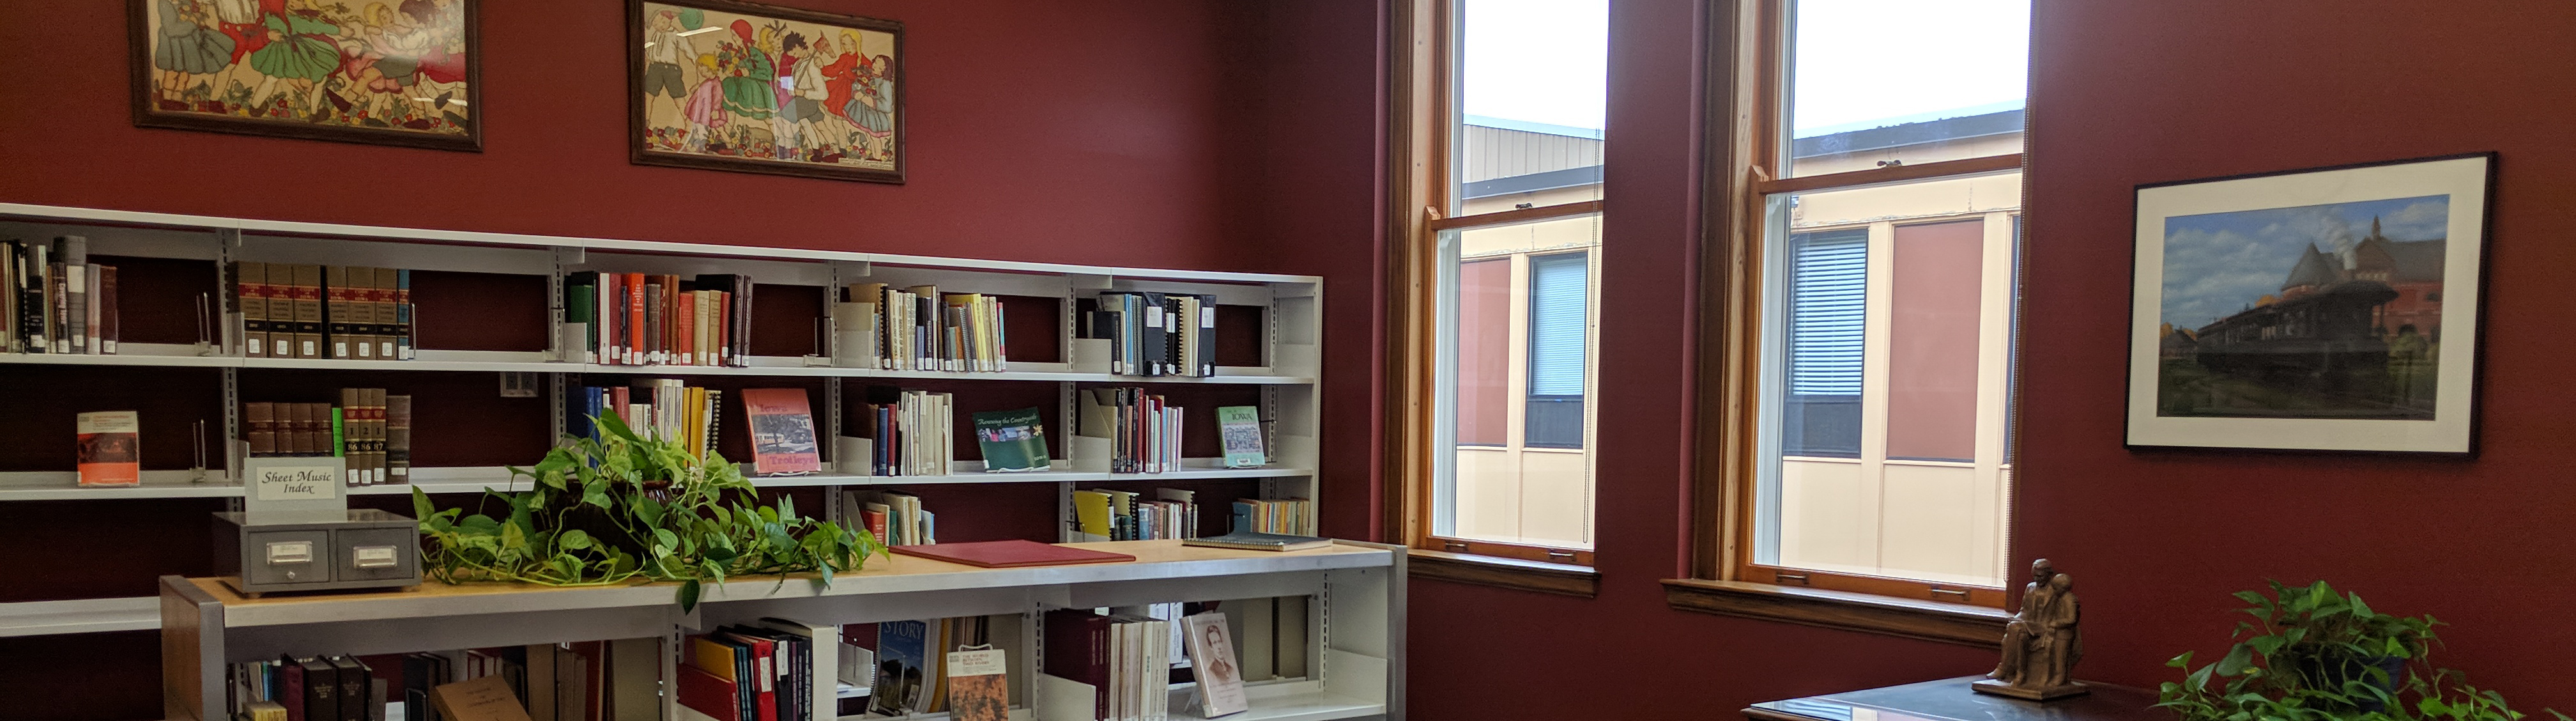 Ames Public Library's Heritage Room